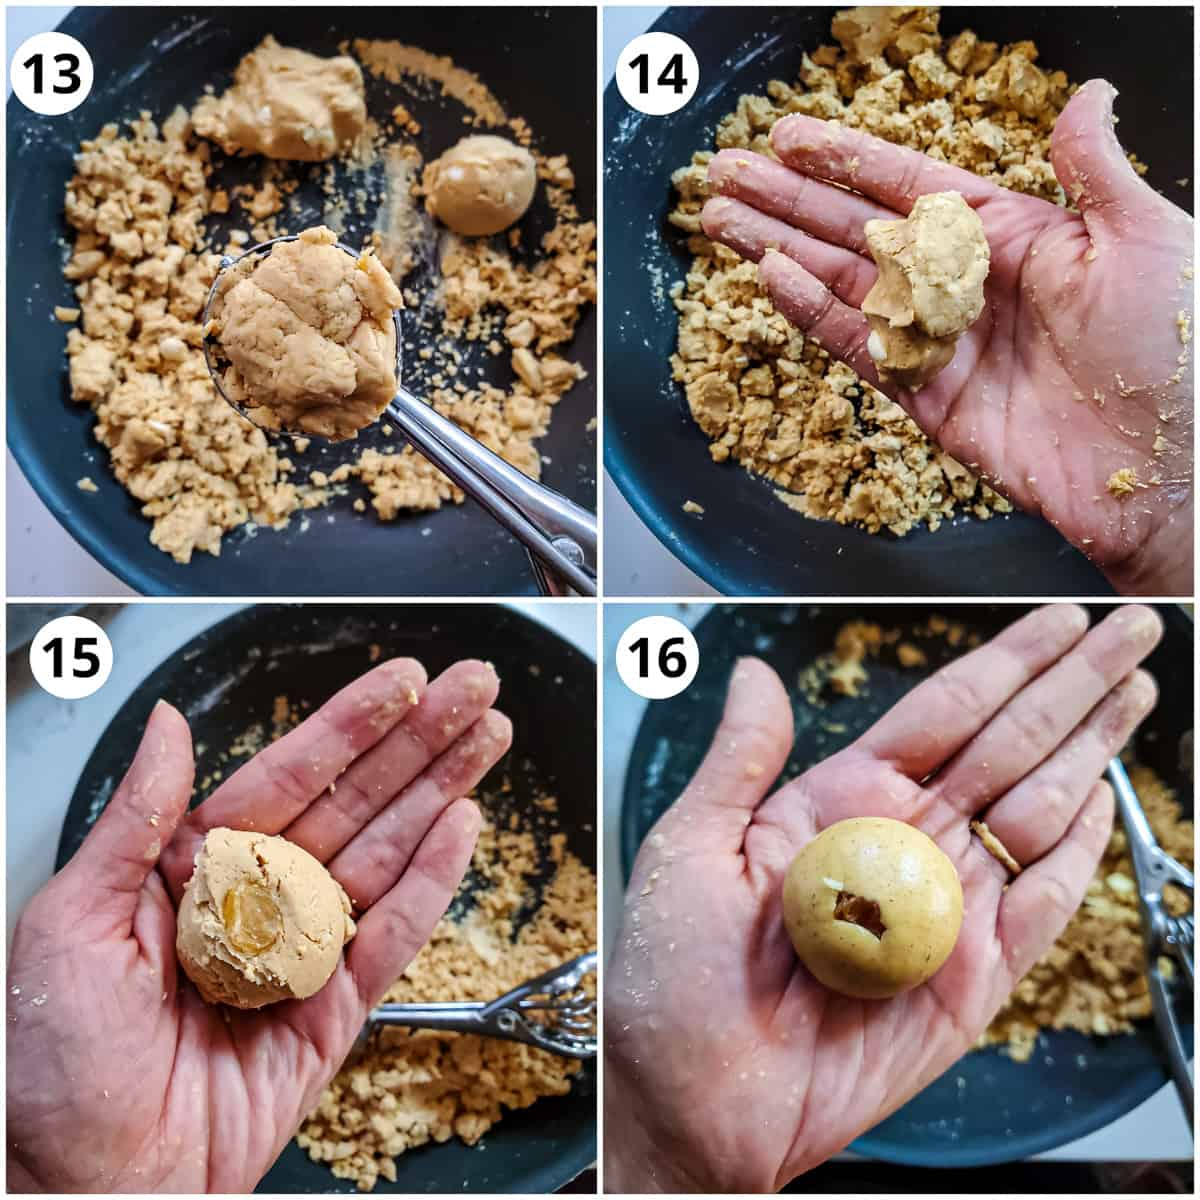 Steps for rolling the Besan ladoos